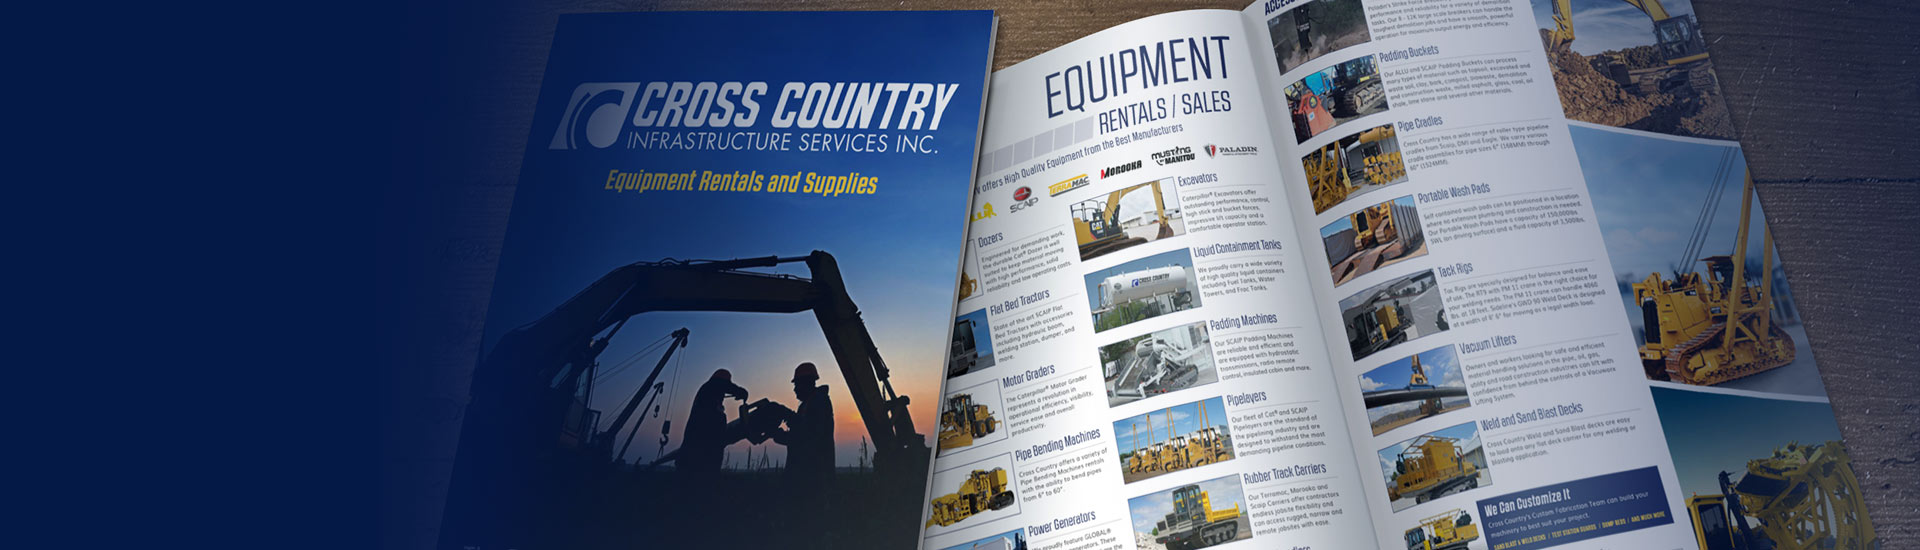 Cross Country Products and Services Brochure